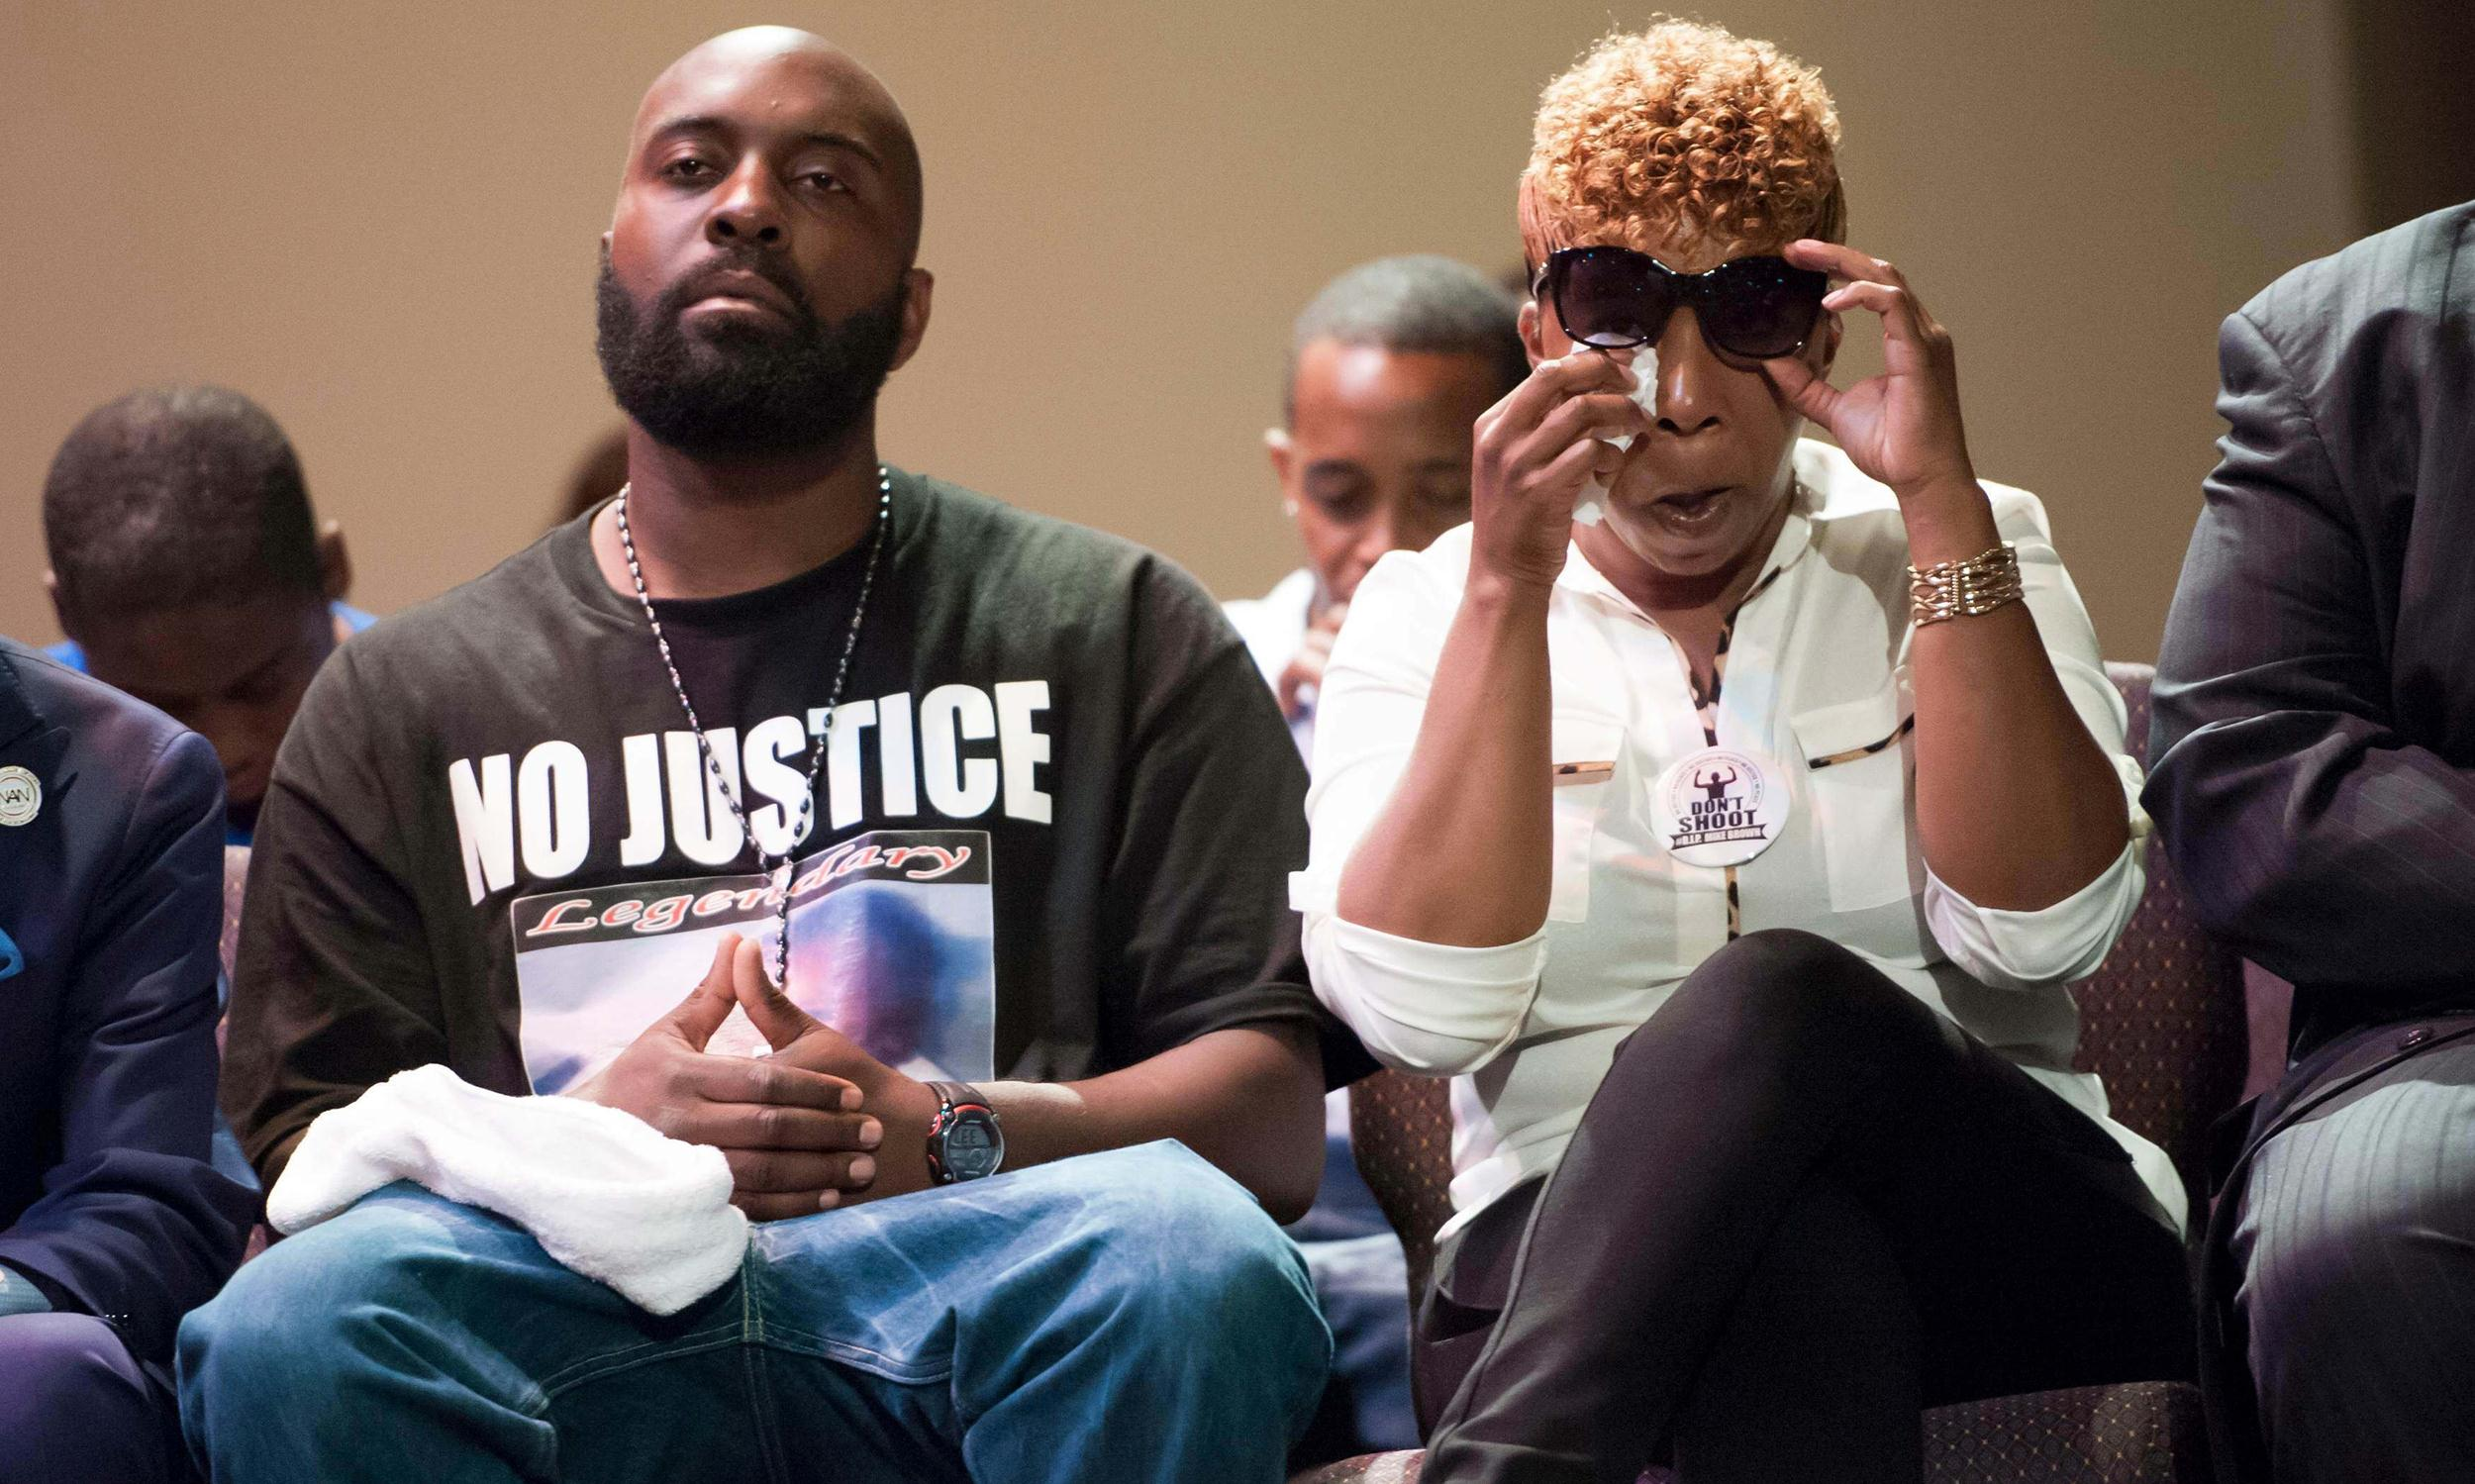 Image: Michael Brown's family listens during a rally convened in reaction to the shooting of their son, in Ferguson, Missouri